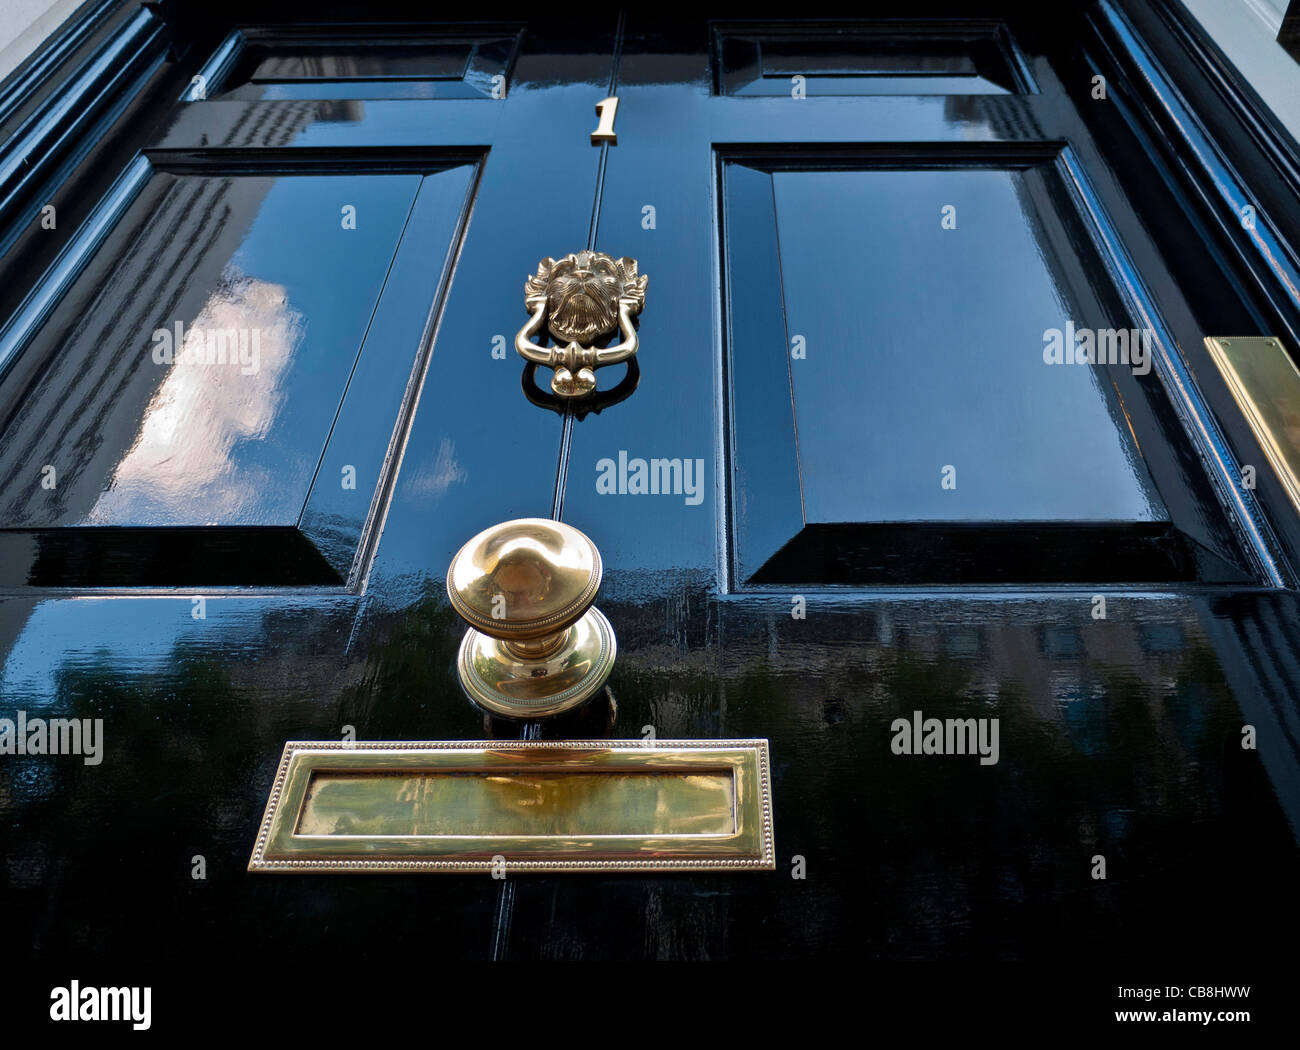 An imposing black paneled Georgian front door 'Number 1' with traditional brass fittings London England UK Stock Photo